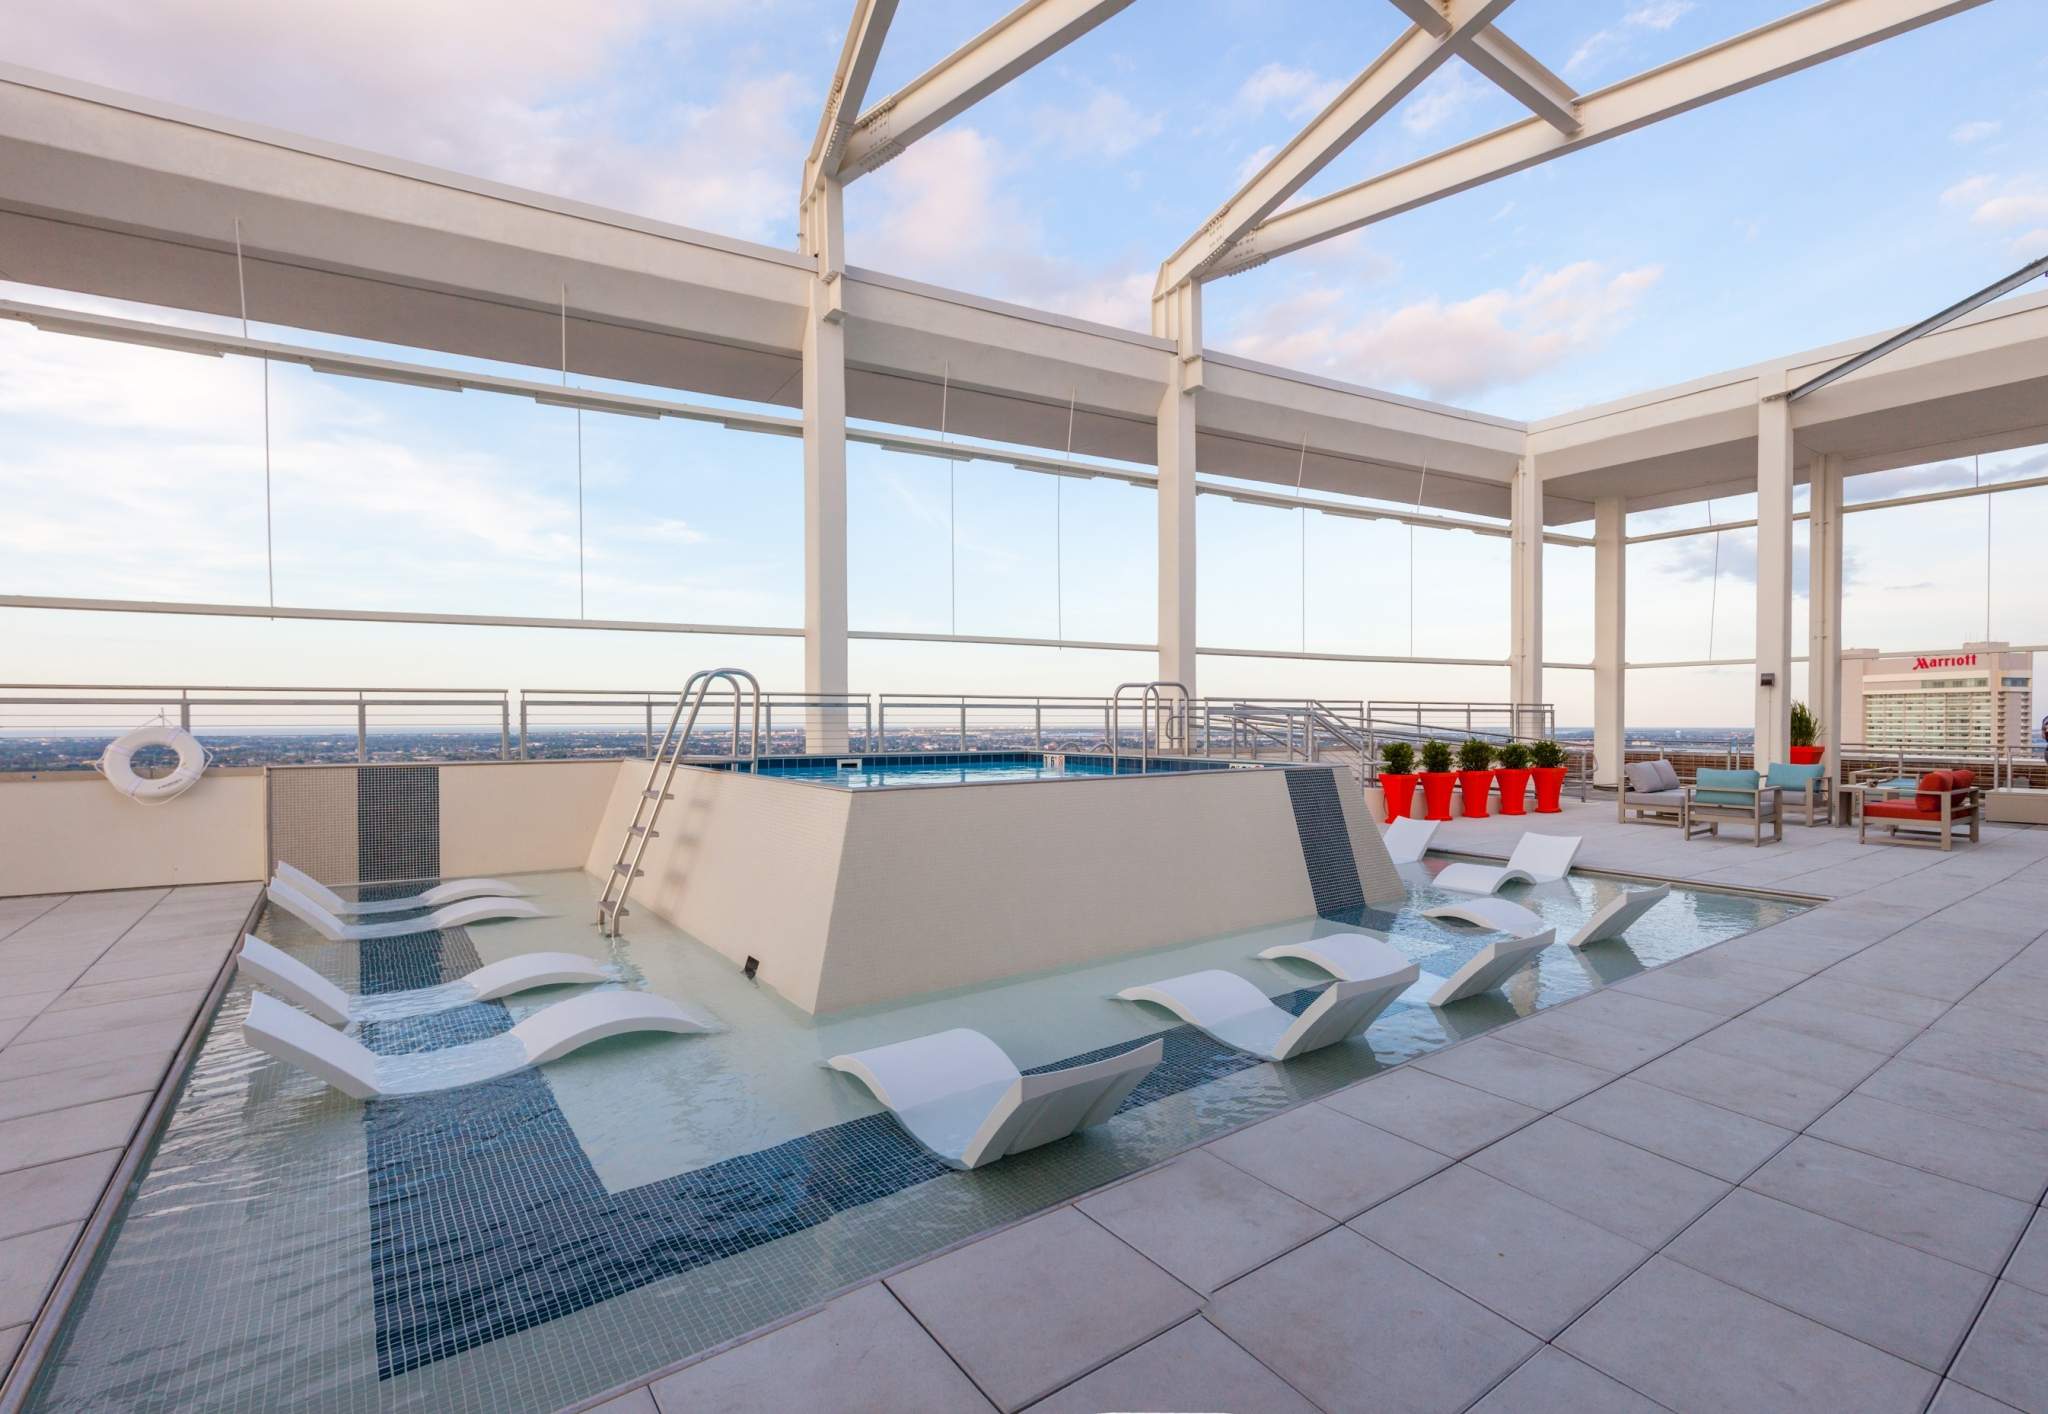 Pool on Roof at The Strand